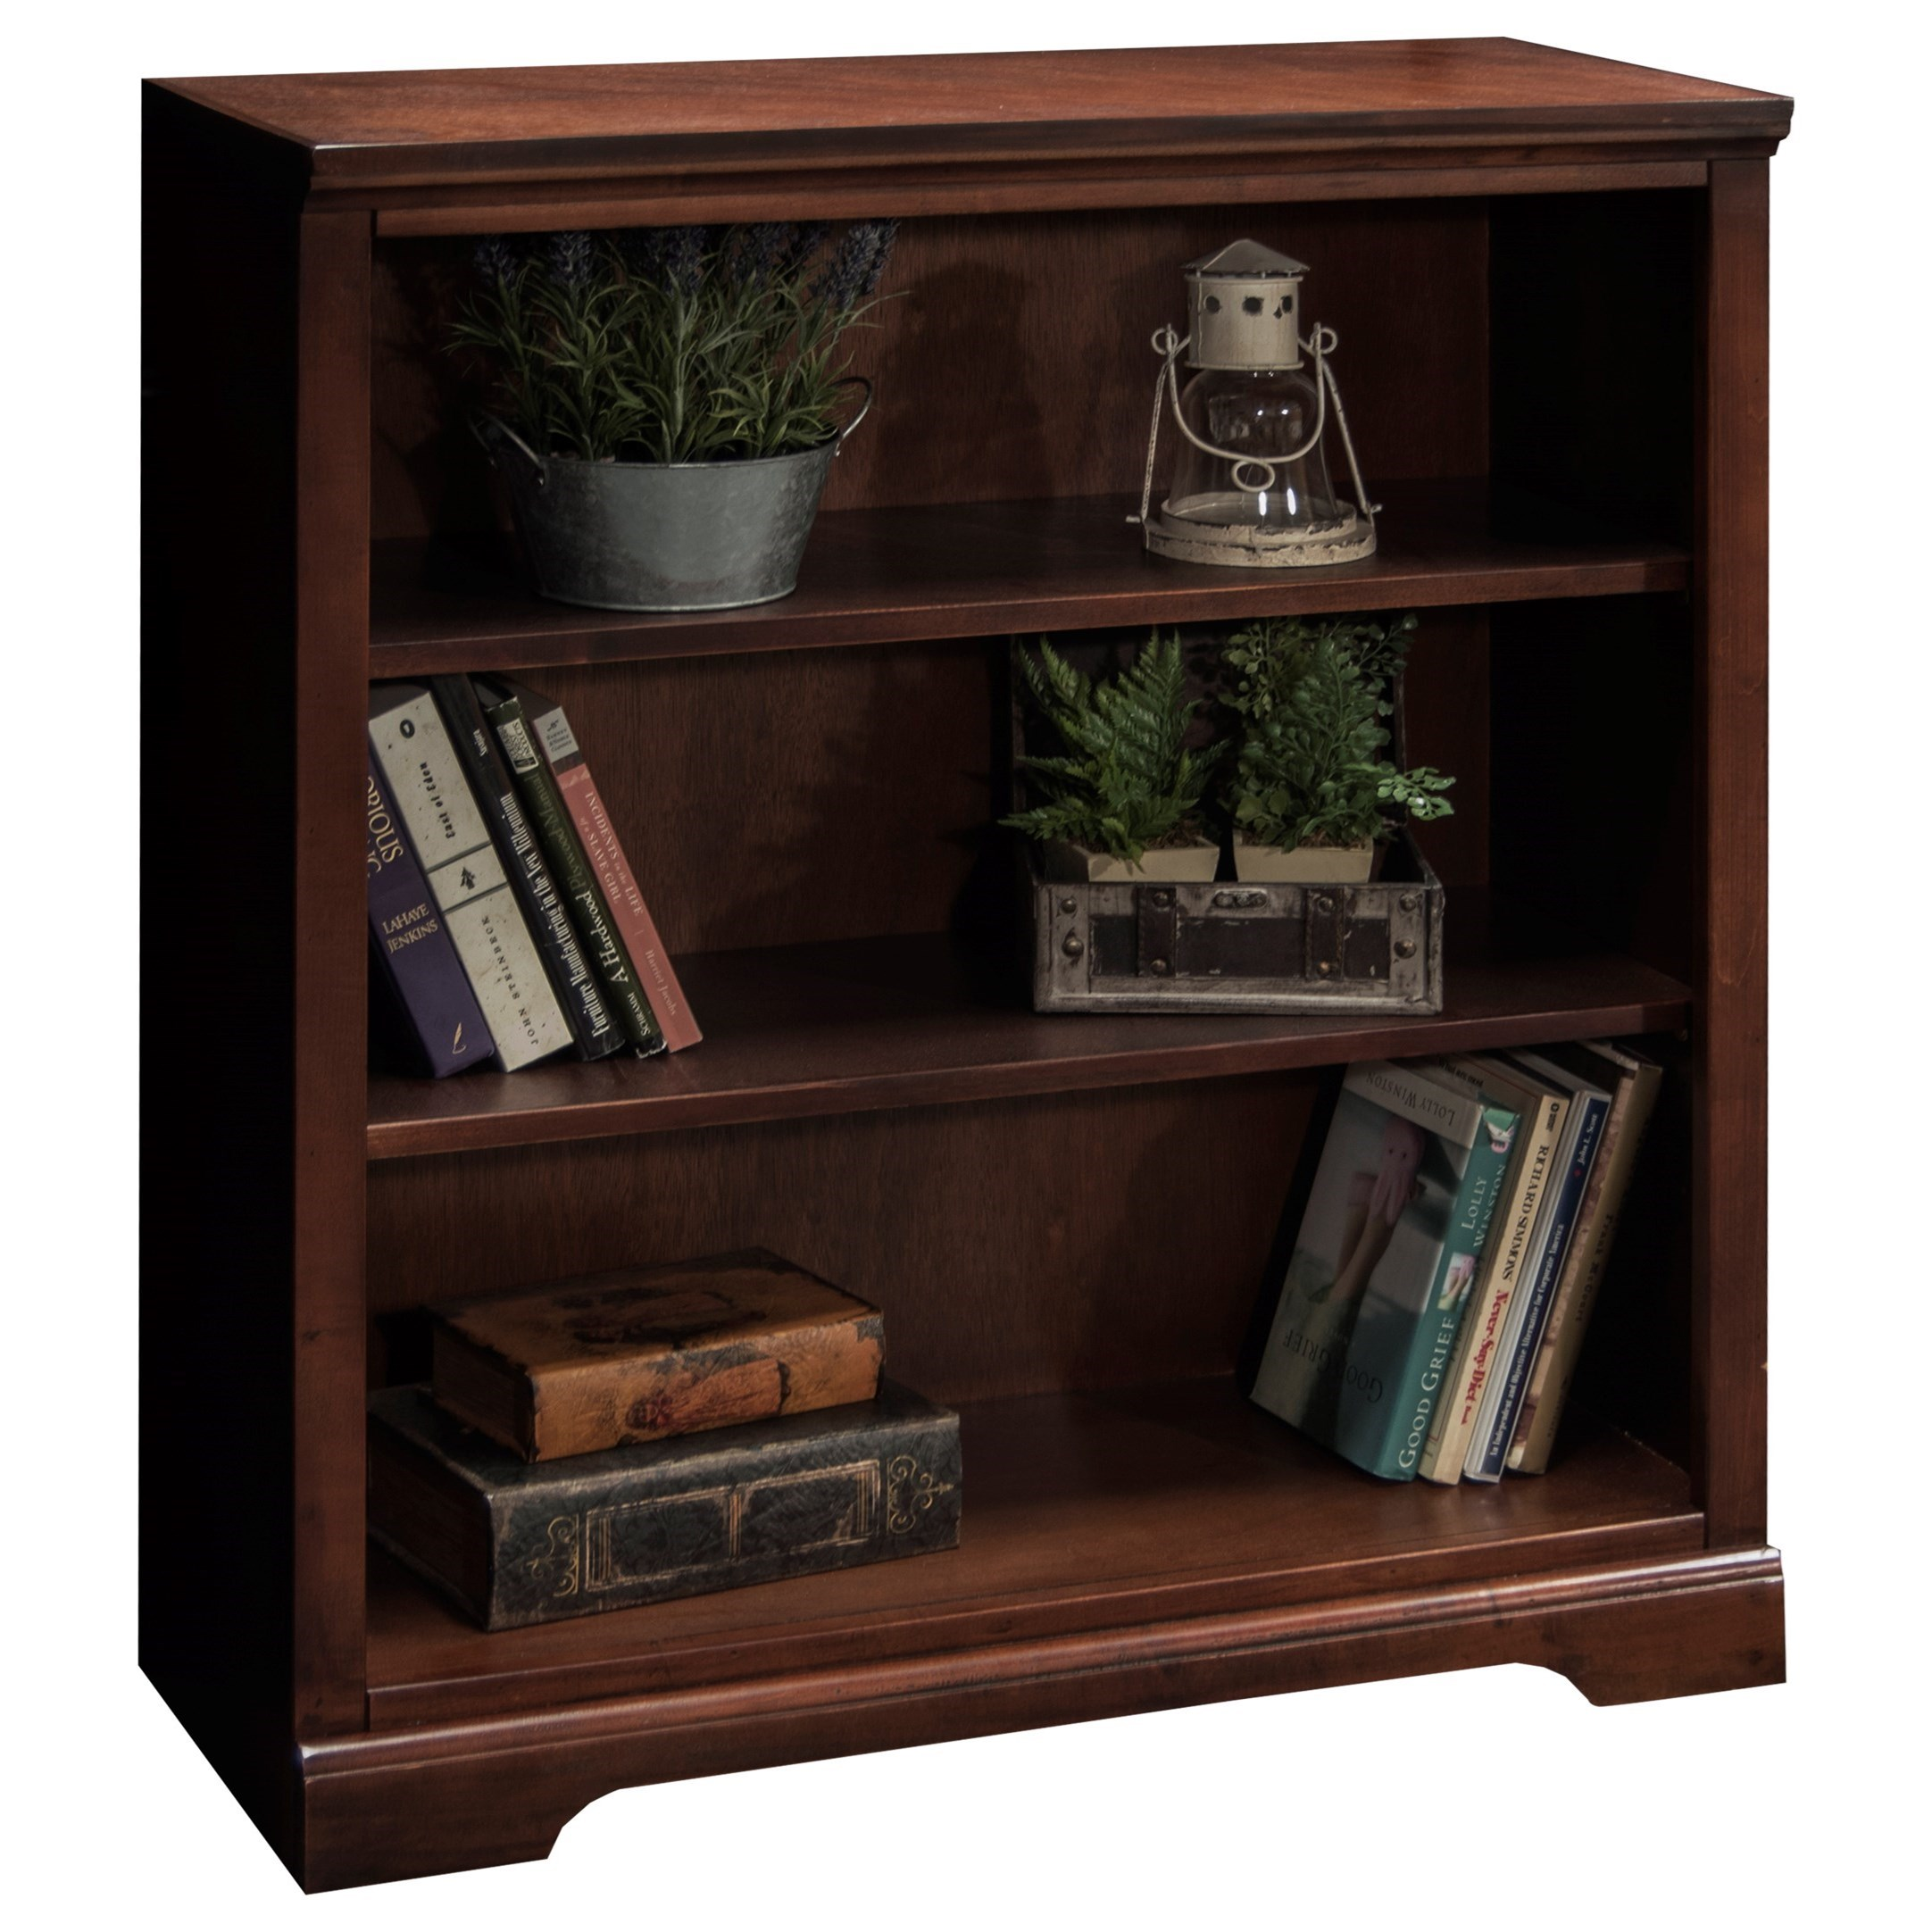 "Legends Furniture Brentwood Brentwood 36"" Bookcase - Item Number: BW6836.DNC"